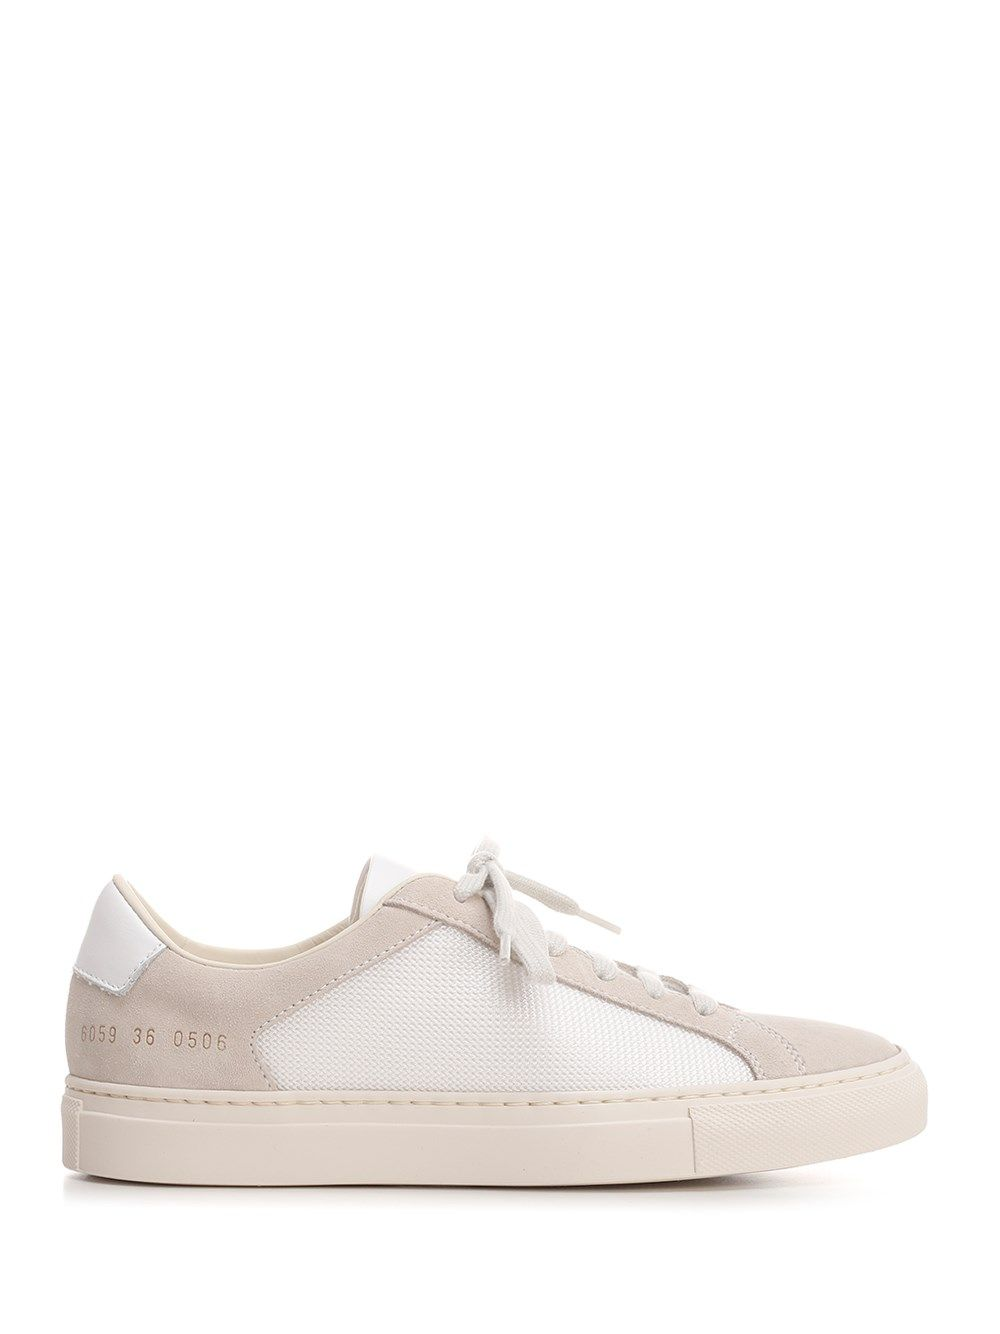 Common Projects COMMON PROJECTS WOMEN'S 60590506 WHITE OTHER MATERIALS SNEAKERS